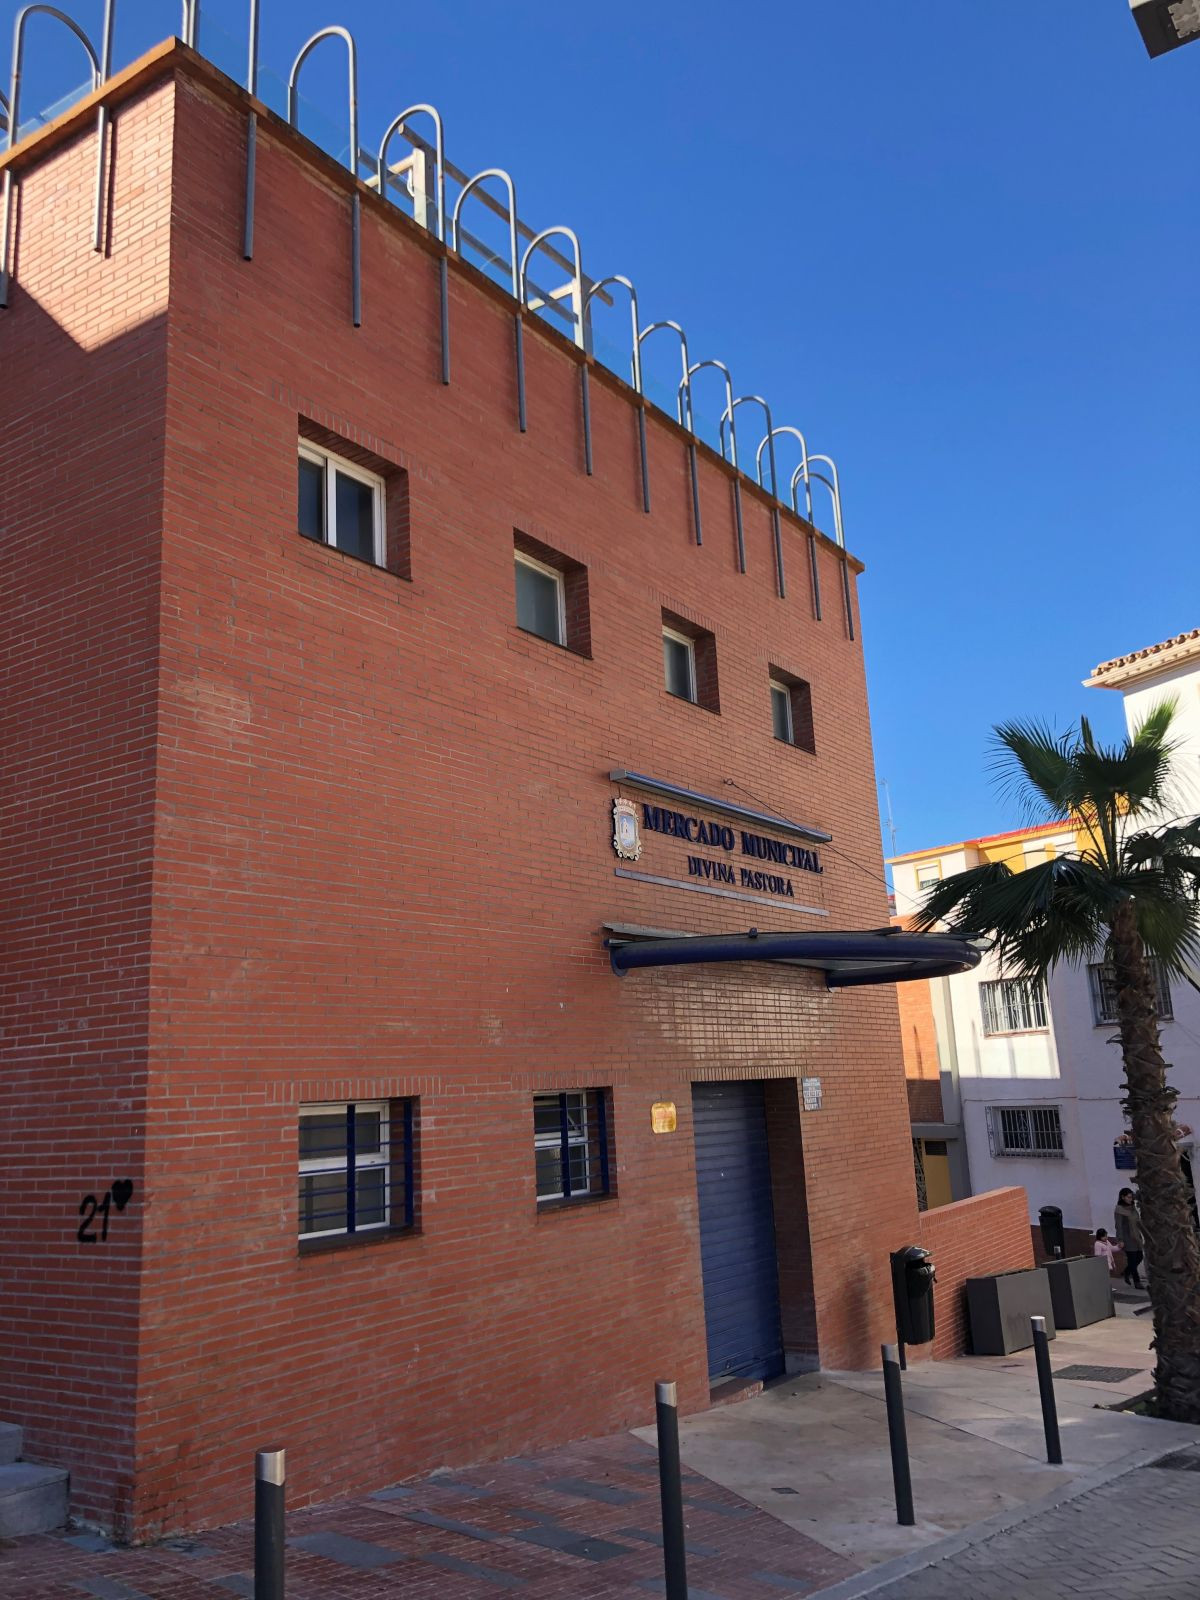 Commercial, Commercial Premises  for sale    en Marbella